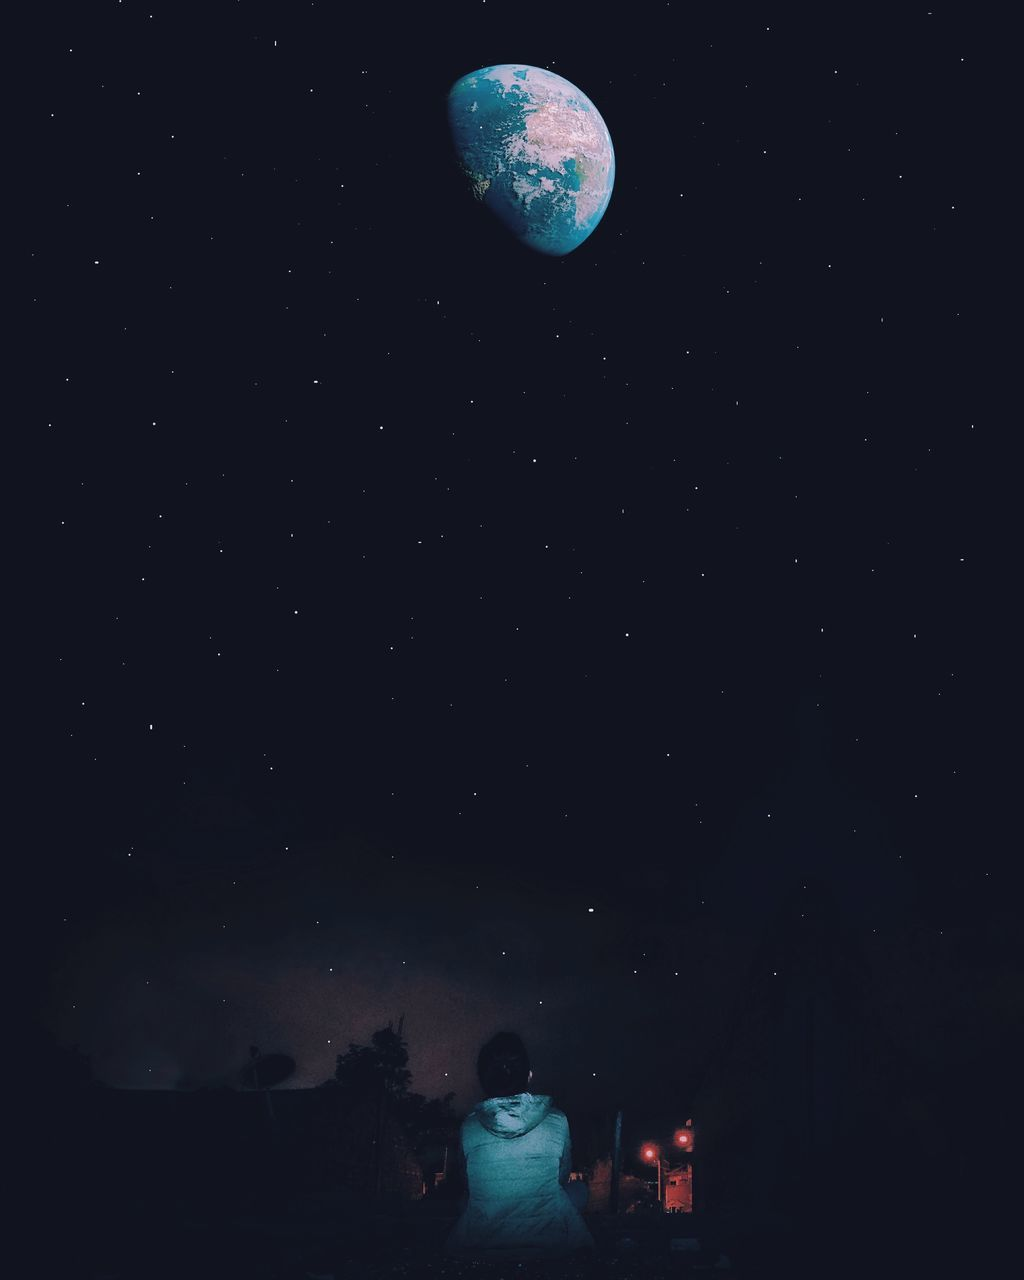 night, astronomy, real people, star - space, moon, space, space exploration, rear view, nature, star field, sky, beauty in nature, planet - space, moon surface, galaxy, leisure activity, outdoors, scenics, lifestyles, constellation, illuminated, starry, one person, people